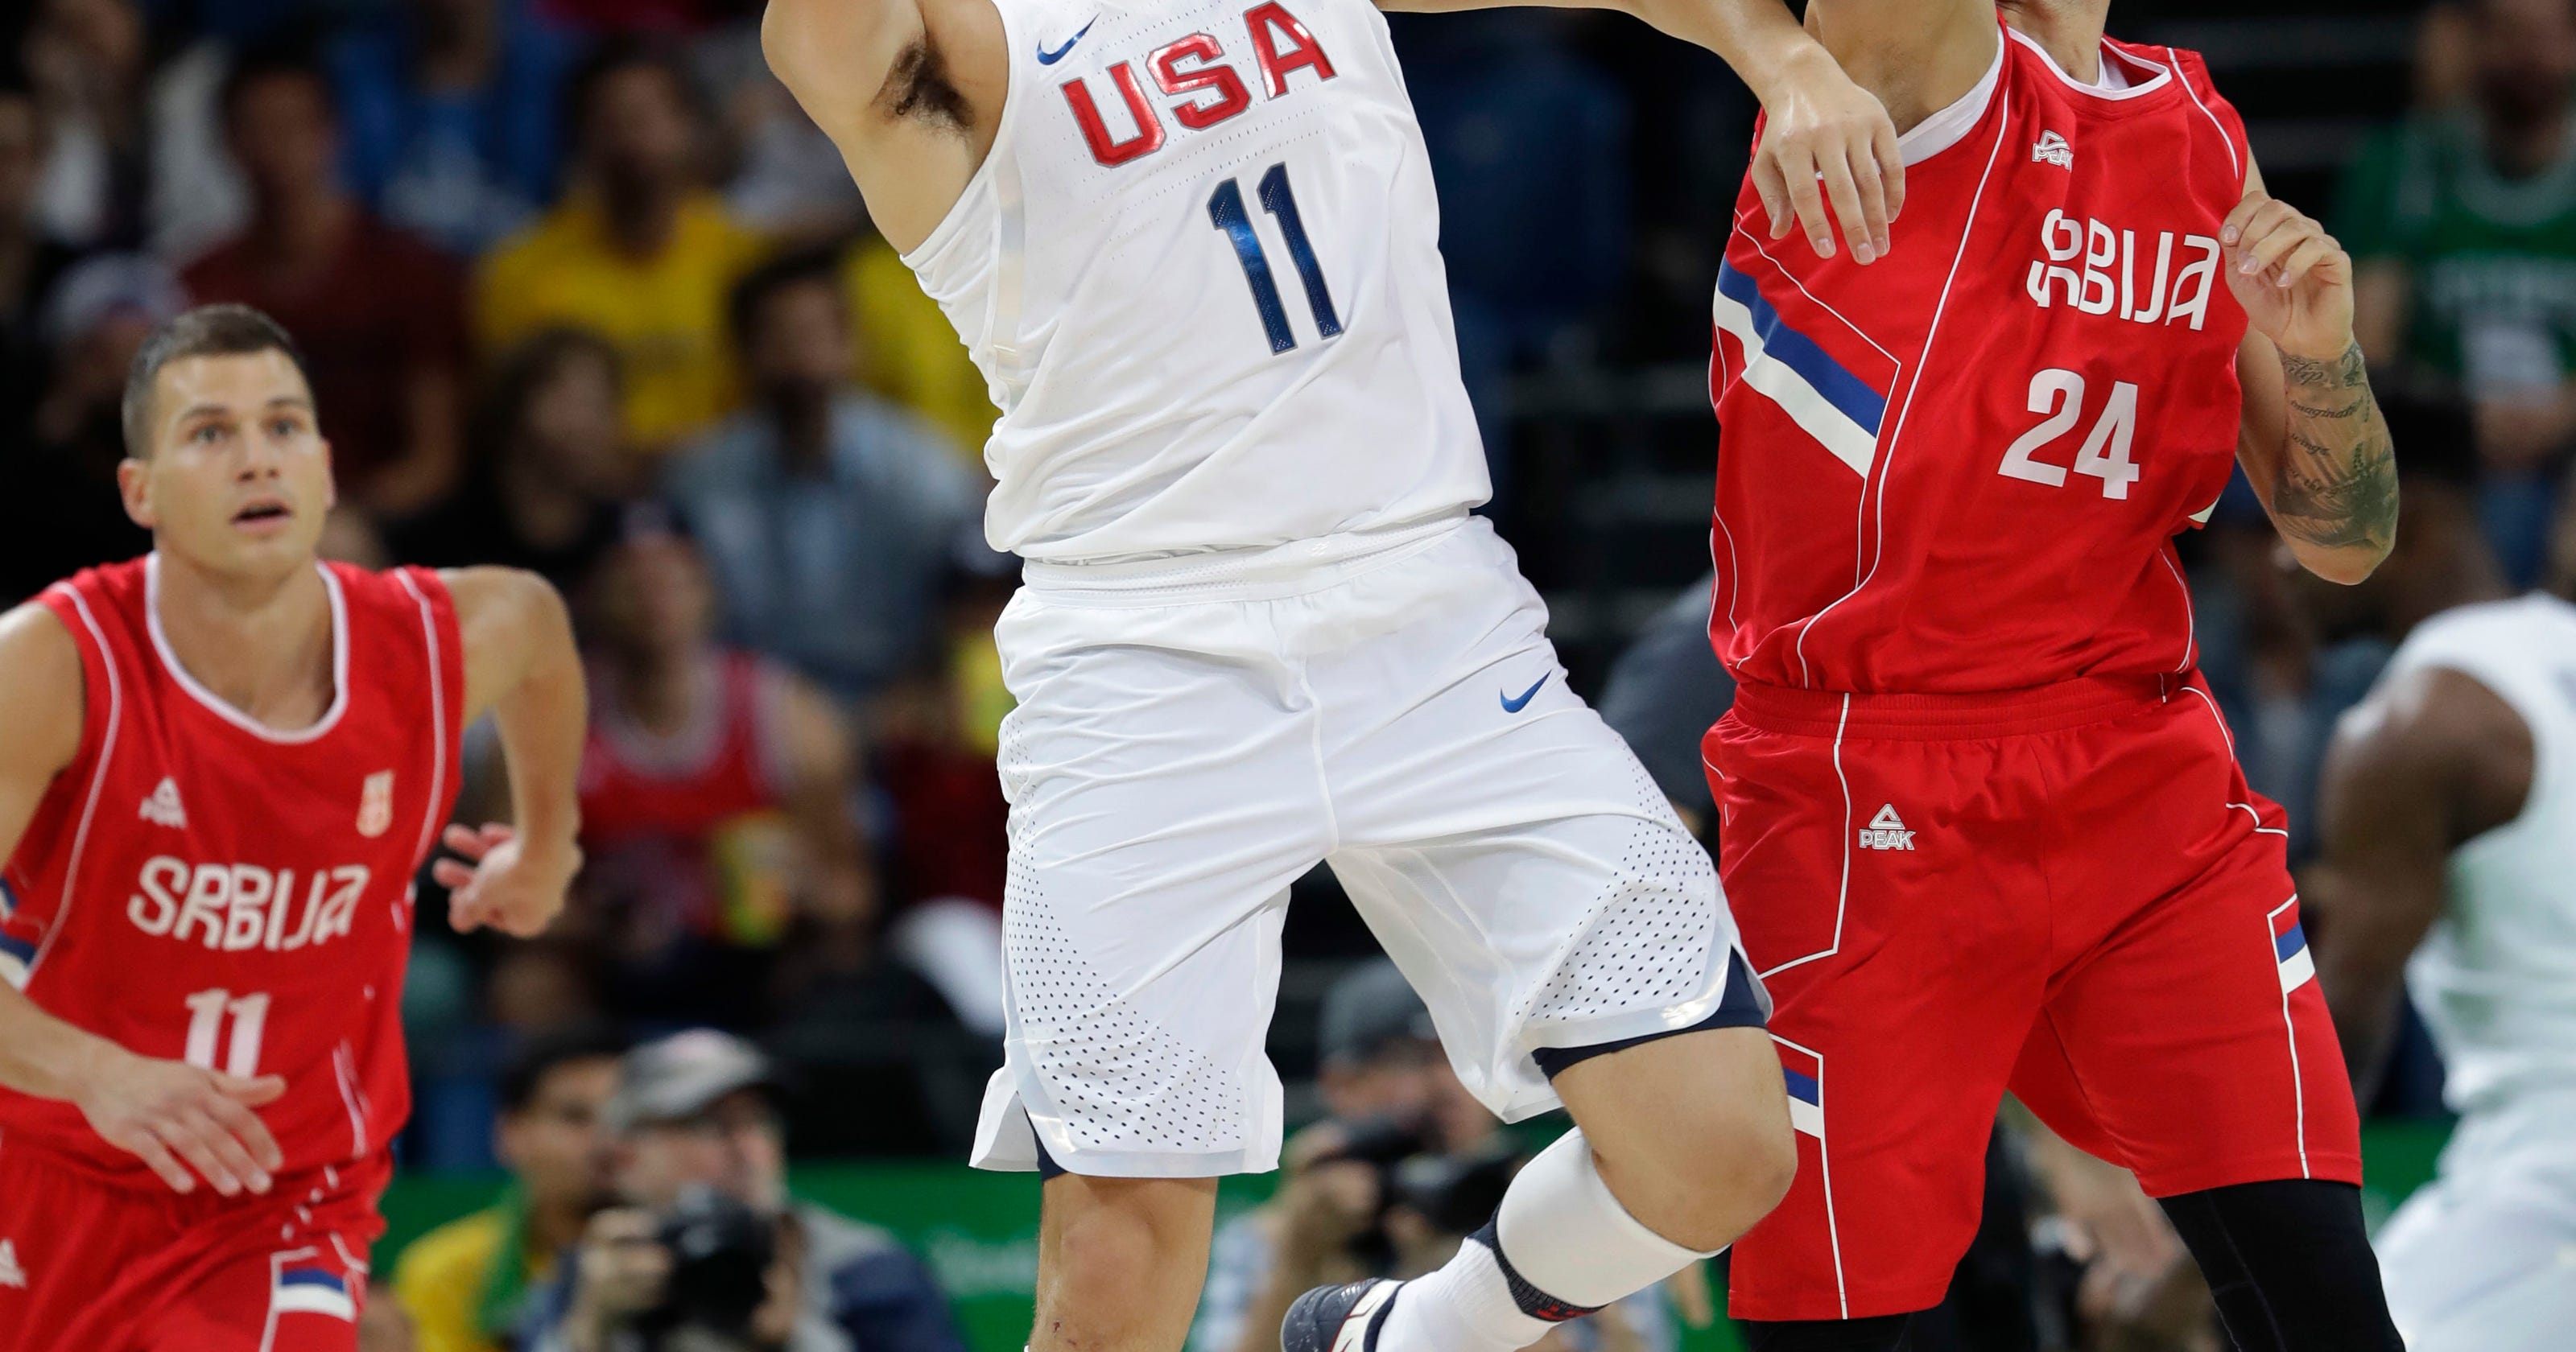 c6266fd47 Another scare  US men s basketball team edges Serbia 94-91